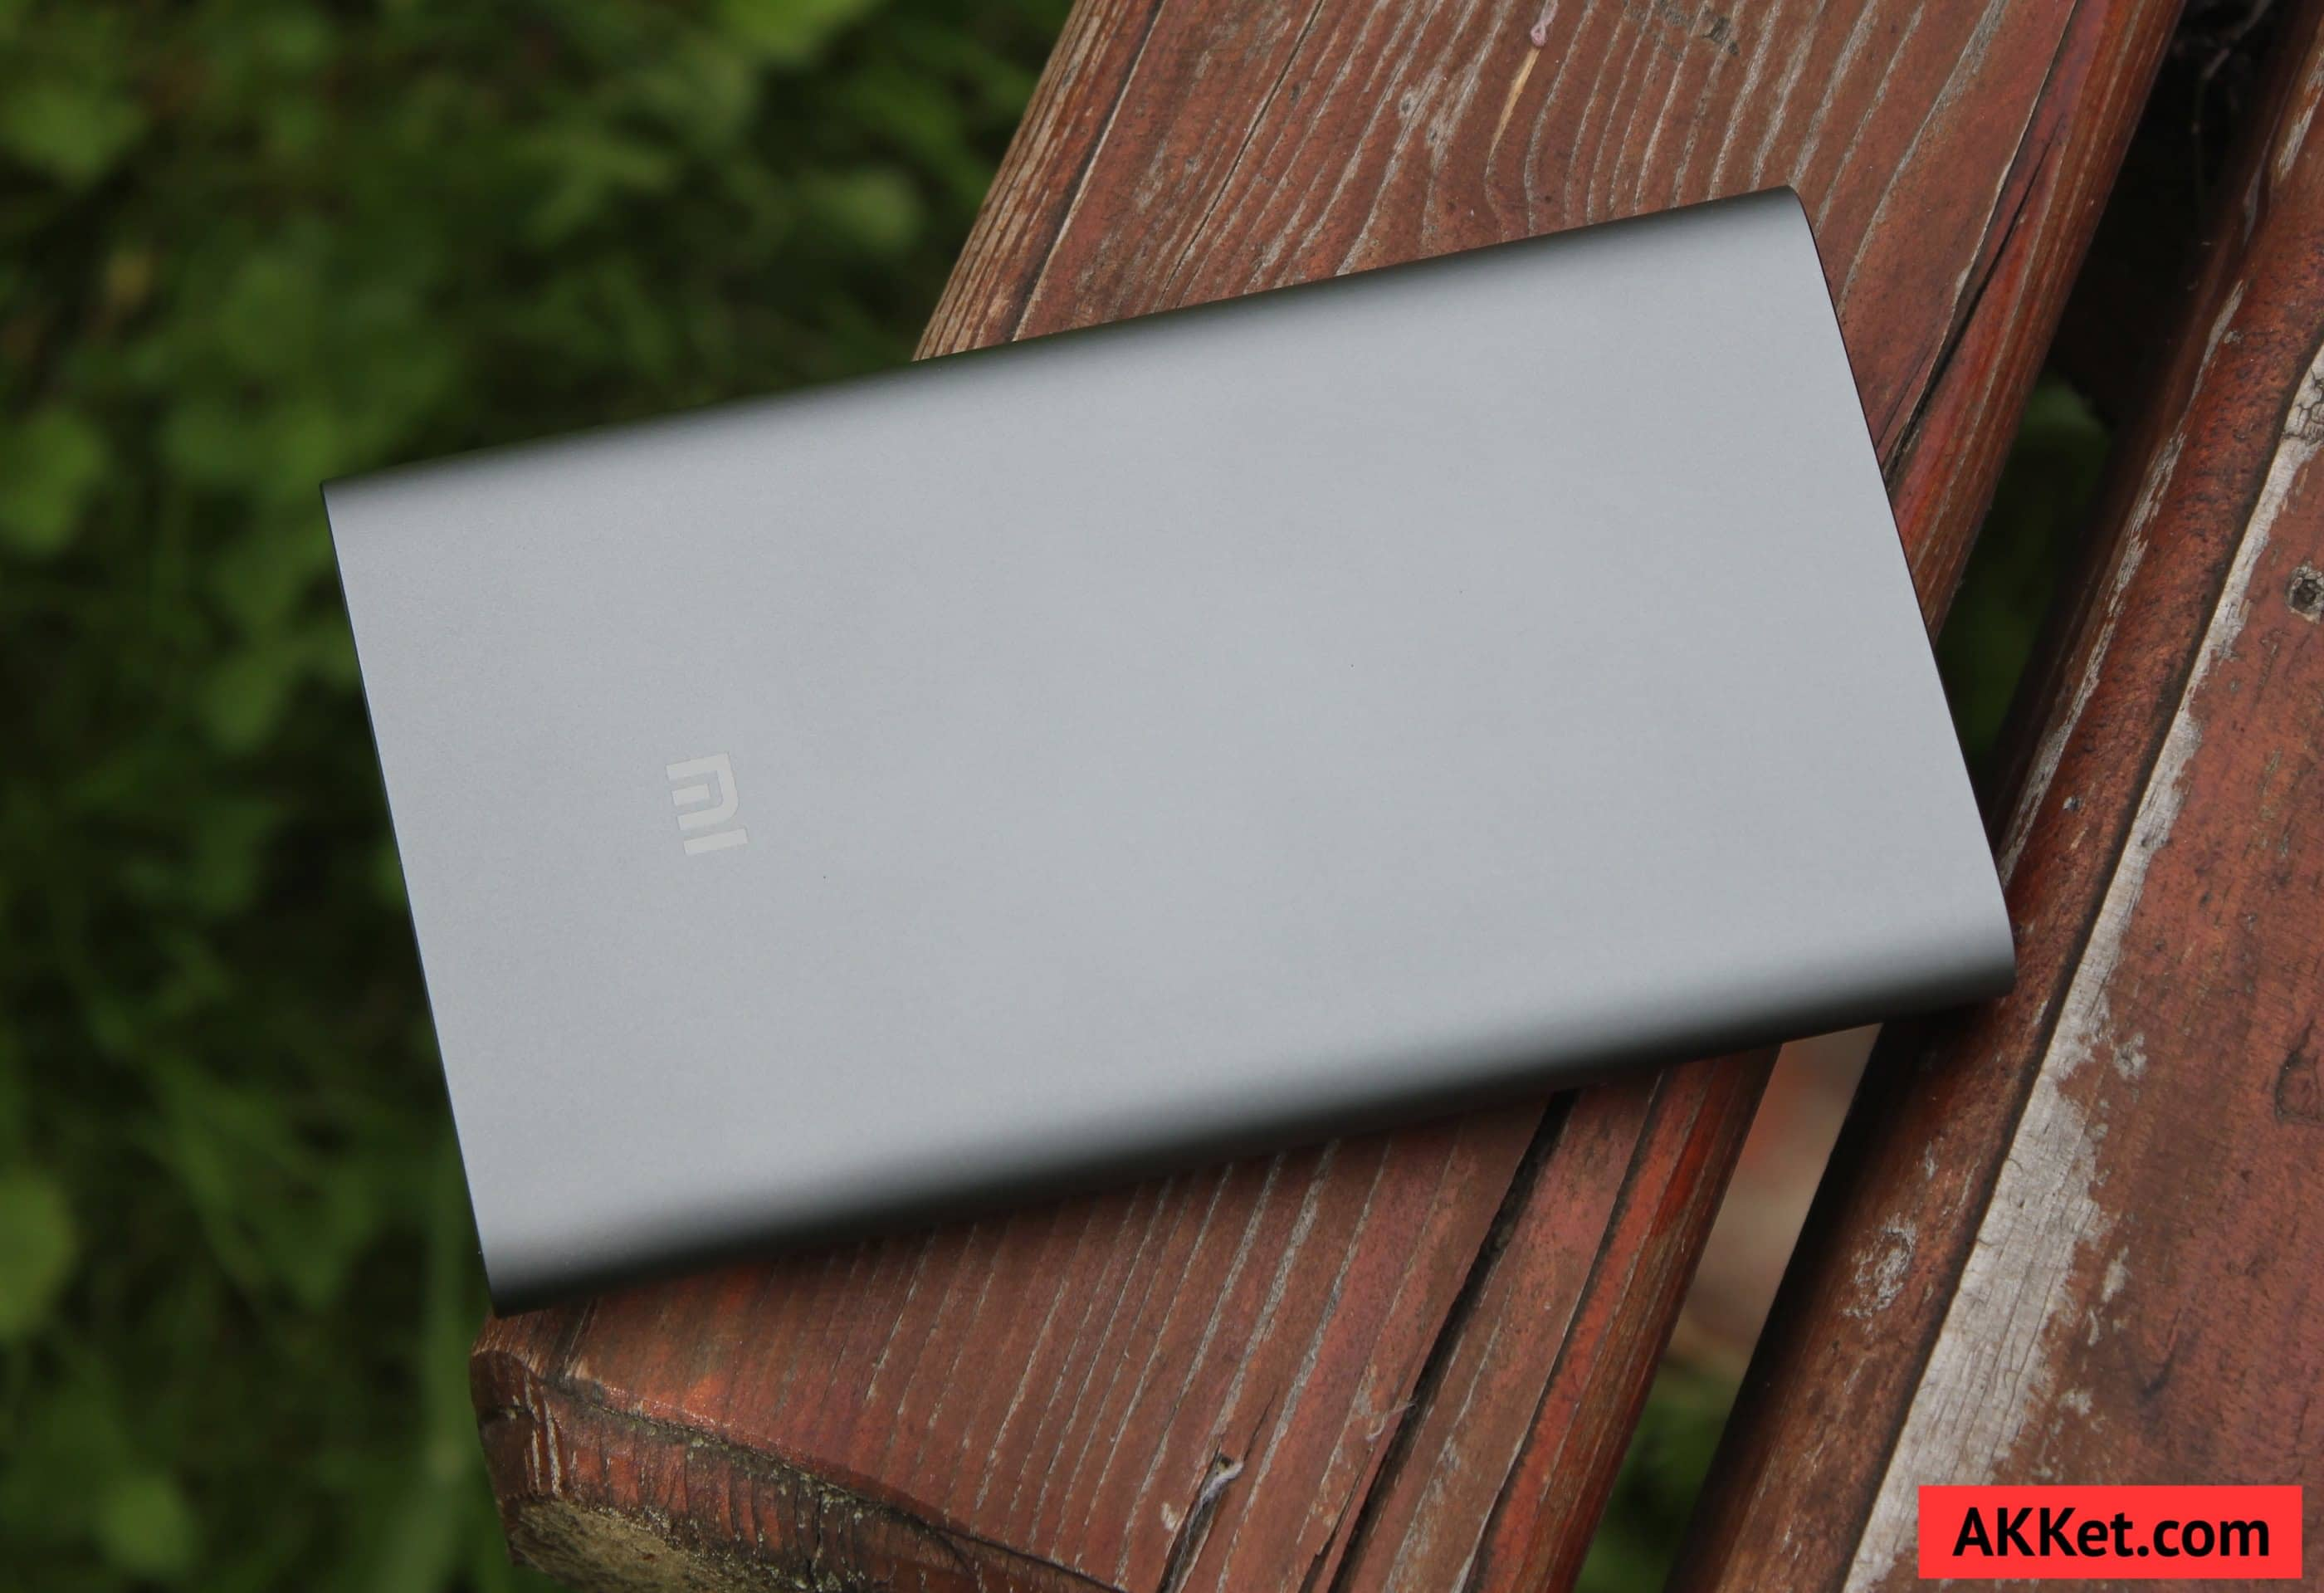 Xiaomi Mi Power Bank Pro 10000 мАч review photo 7